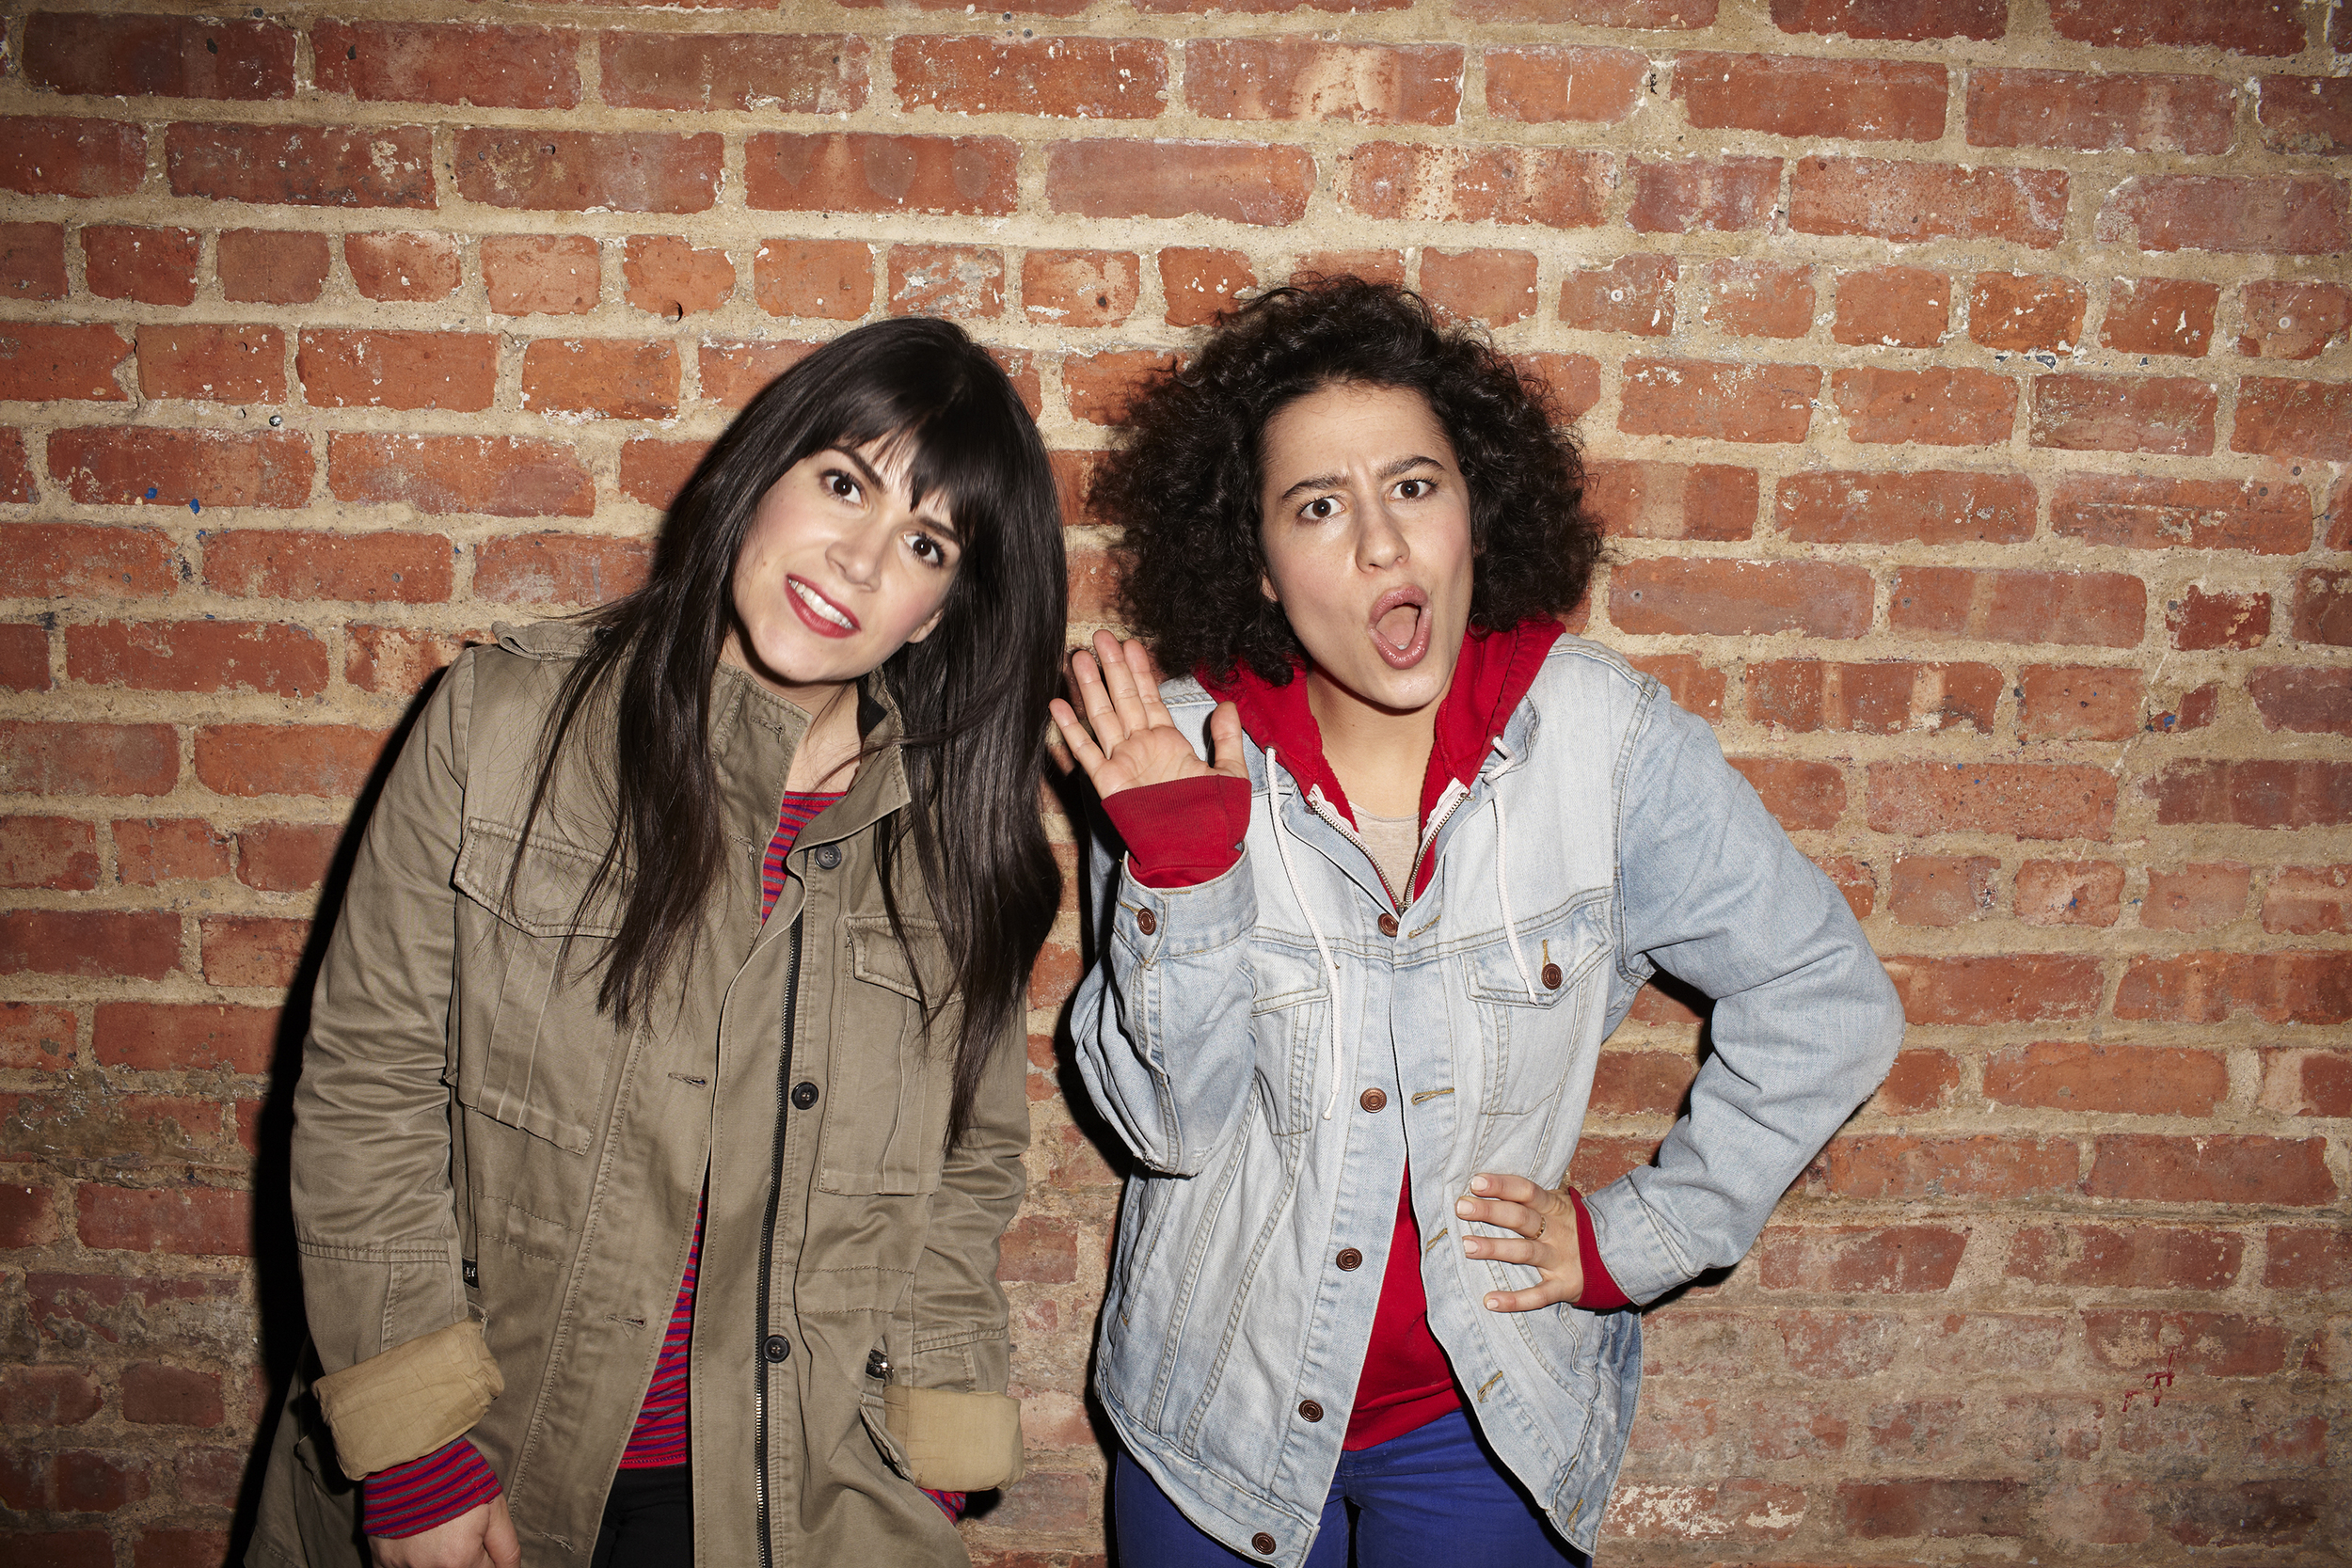 broad-cityabbi-jacobson-ilana-glazer-photocreditlane-savage.jpg